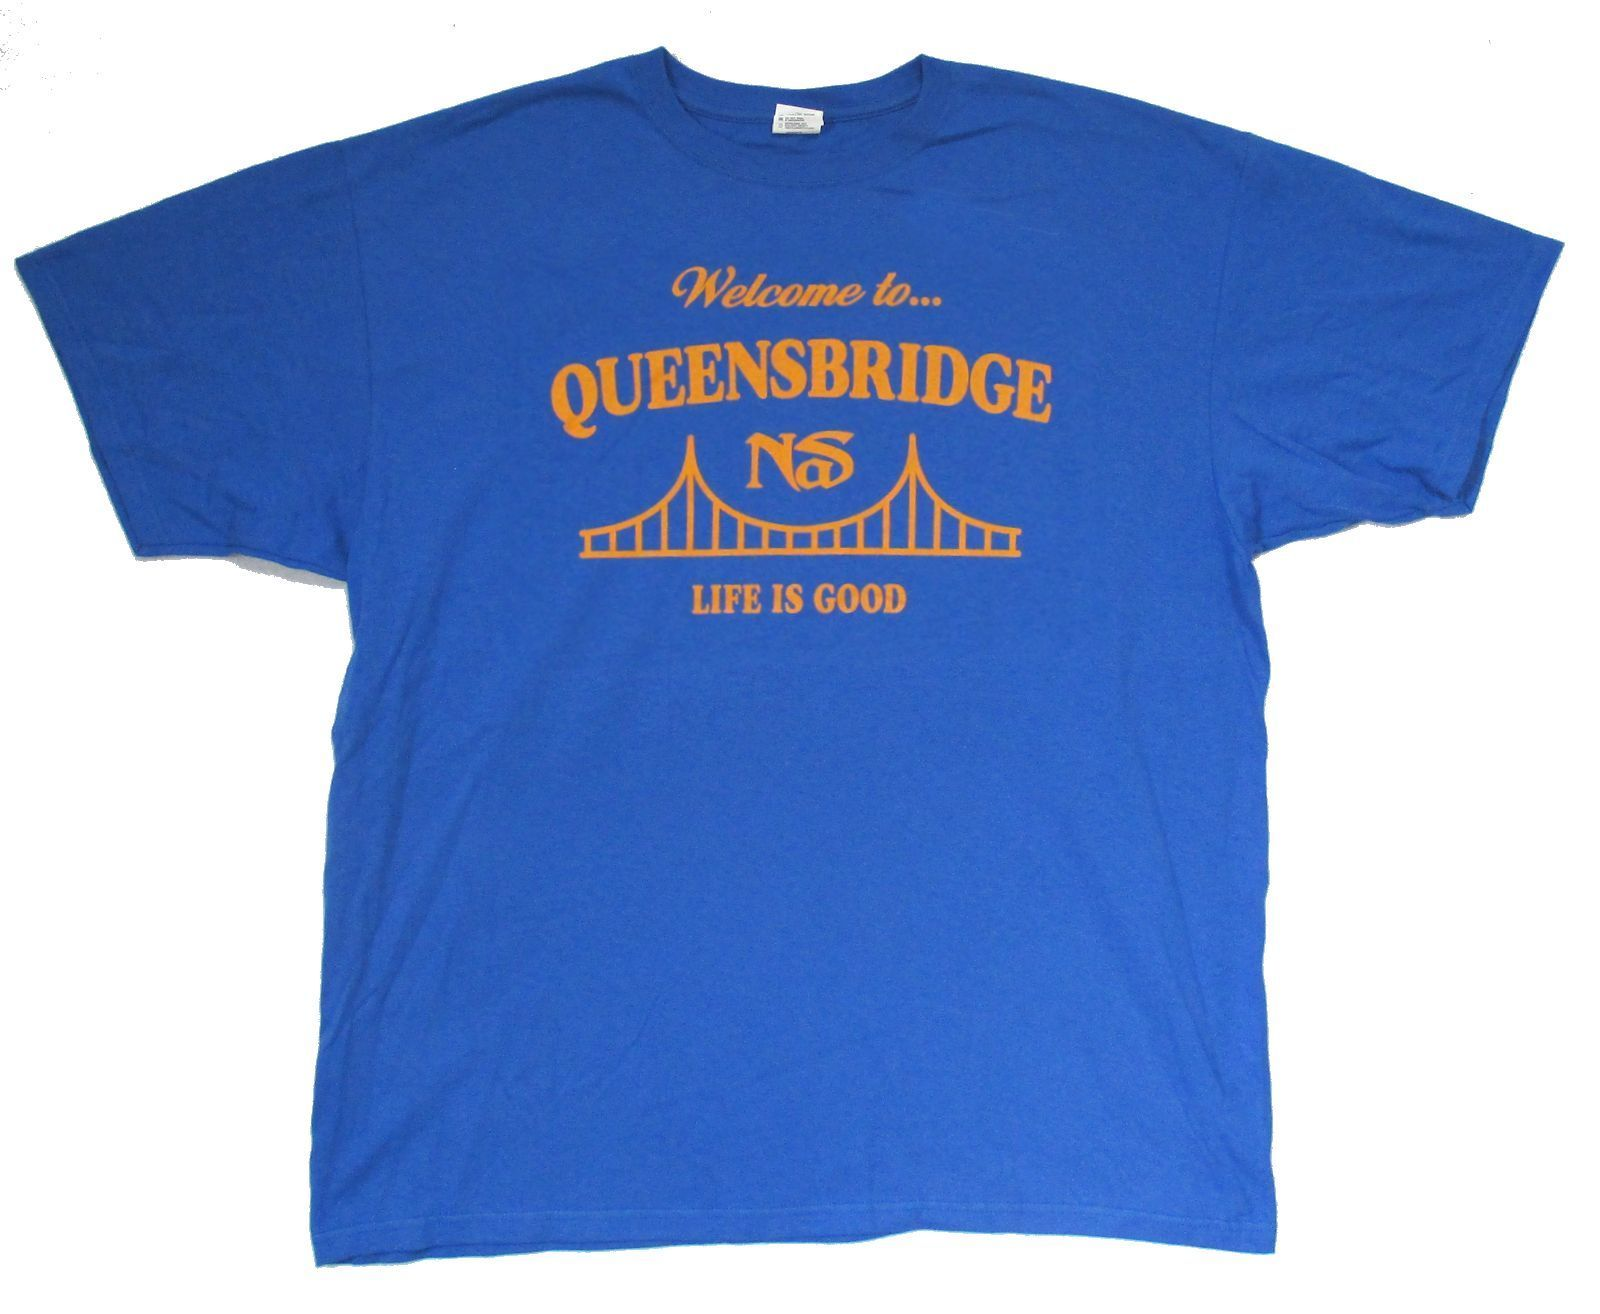 US $14 99 |NAS WELCOME TO QUEENSBRIDGE LIFE IS GOOD BLUE T SHIRT 3XL NEW  OFFICIAL ILLMATIC Fashion Men T Shirt Free Shipping top tee-in T-Shirts  from